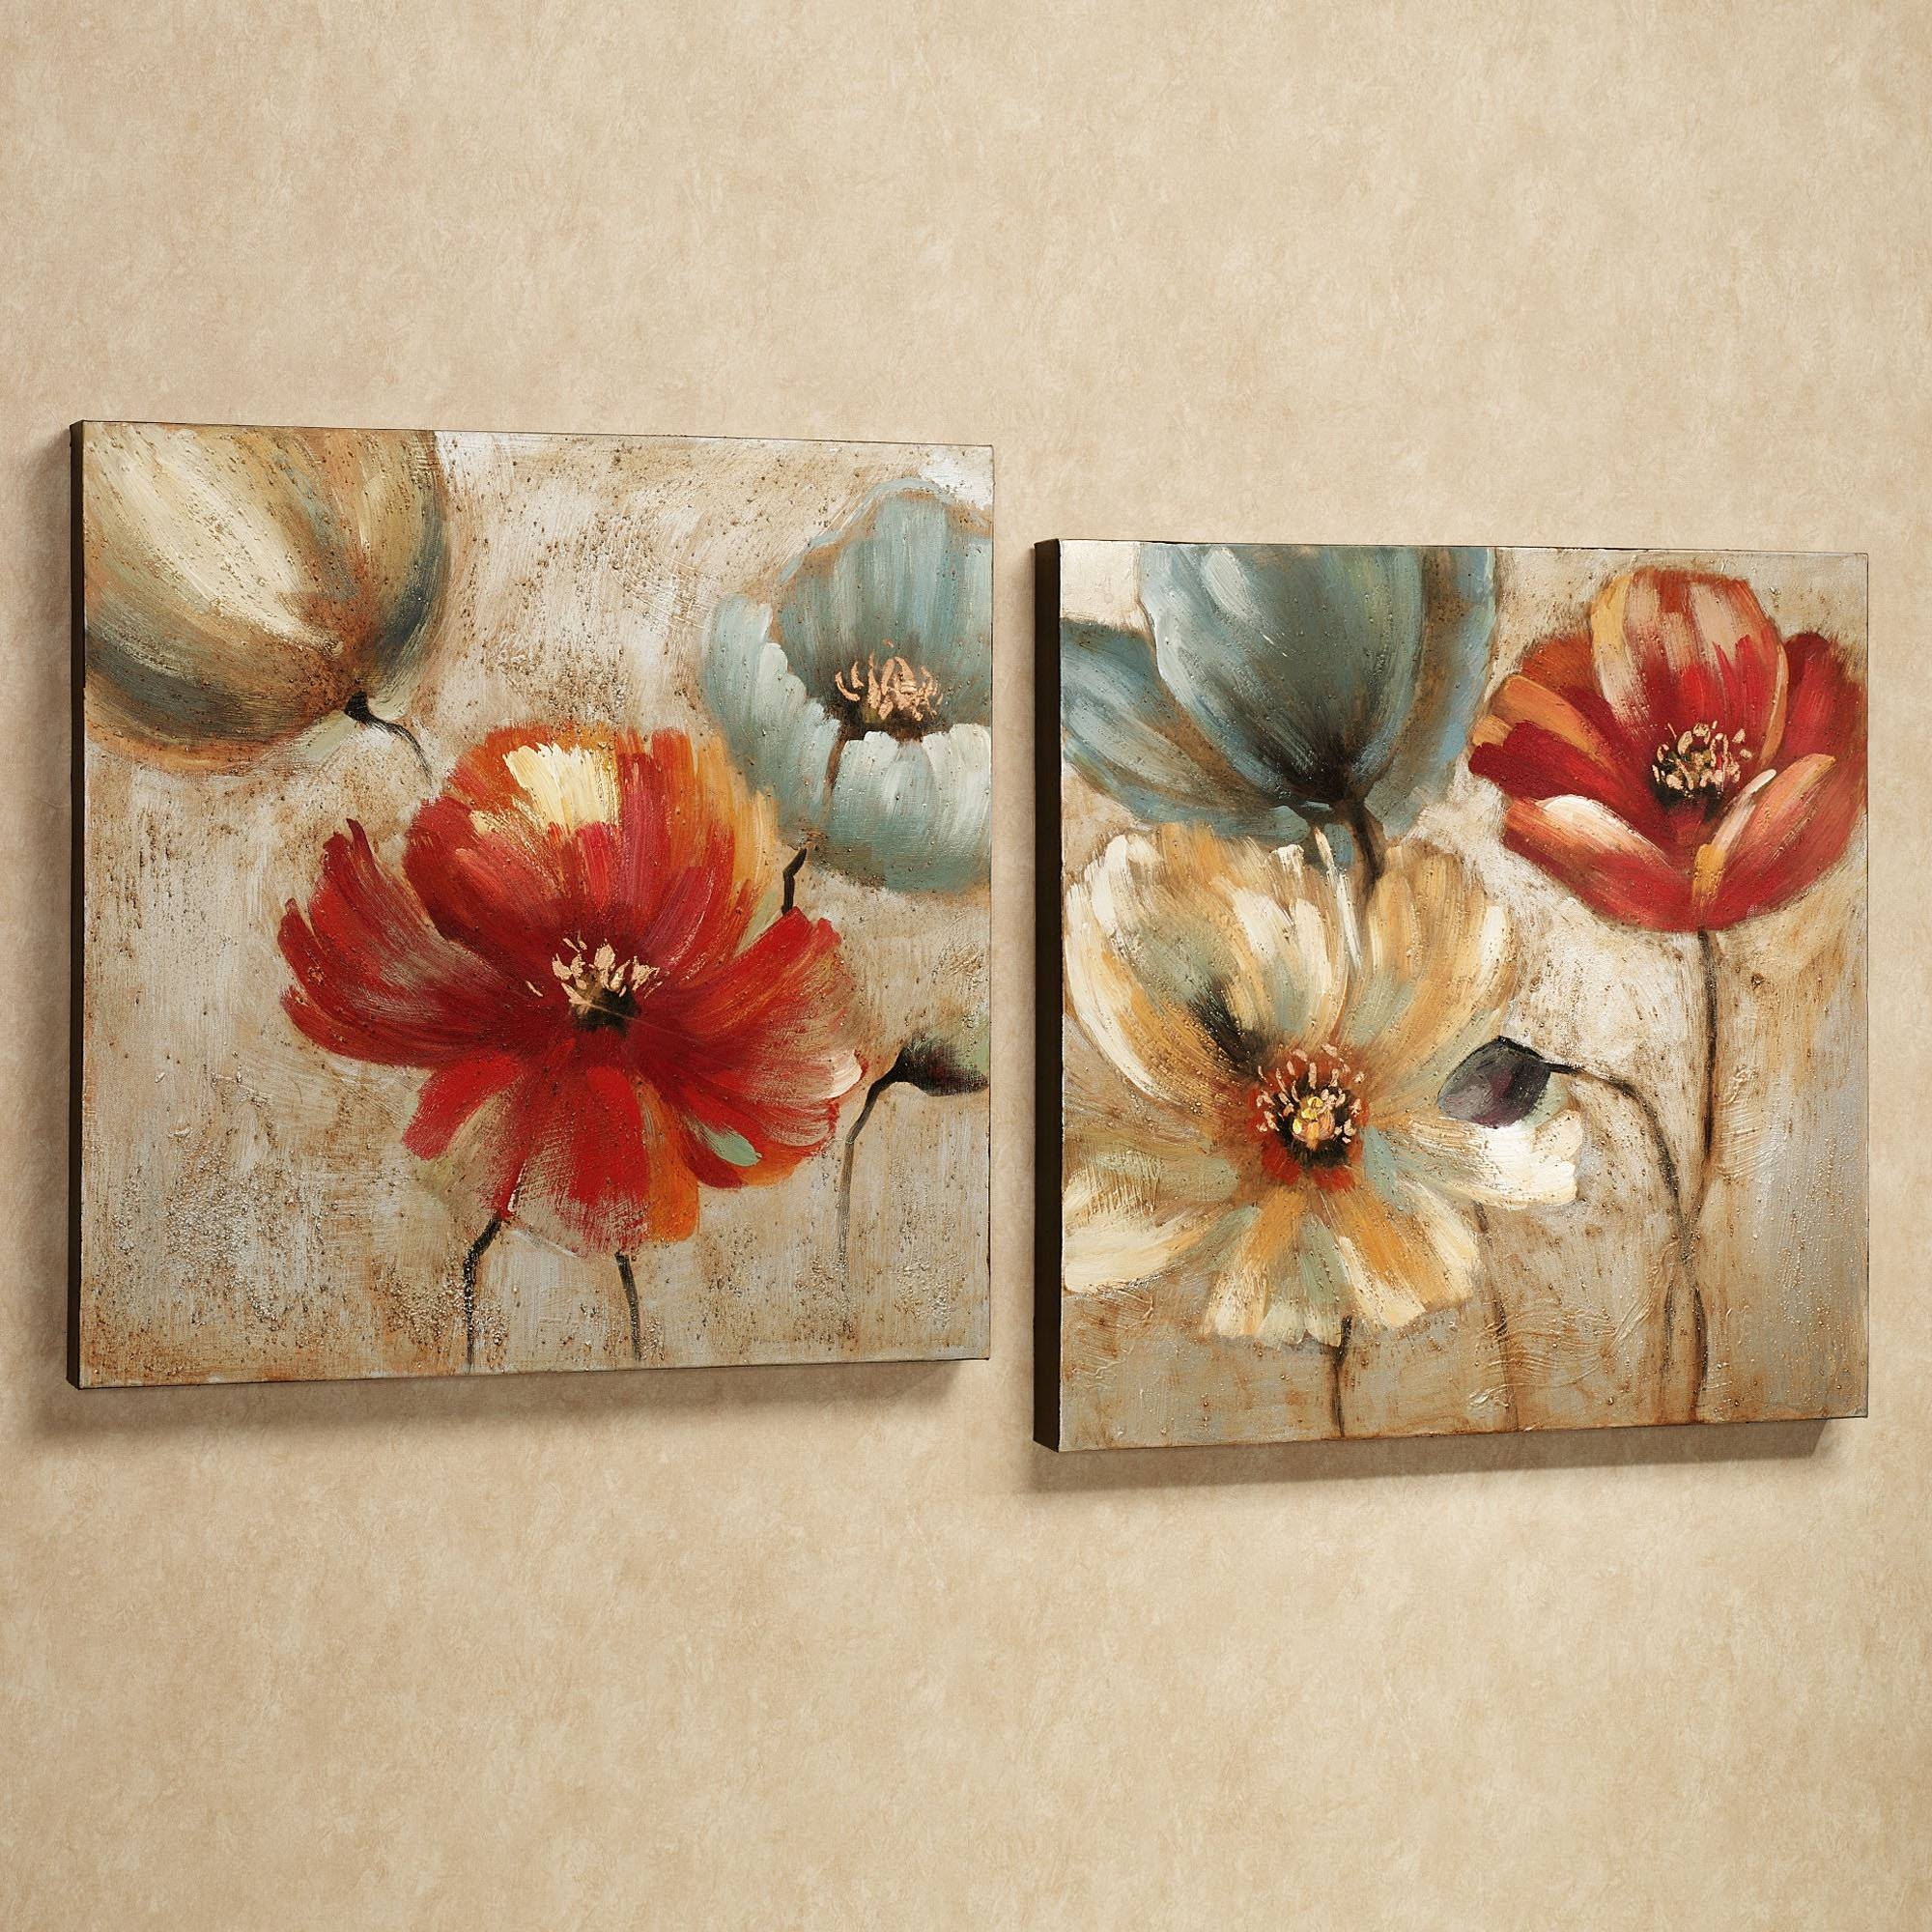 Wall Art Designs: Awesome Floral Wall Art Canvas Floral Wall Art Pertaining To Most Recent Cheap Wall Art Canvas Sets (View 10 of 15)